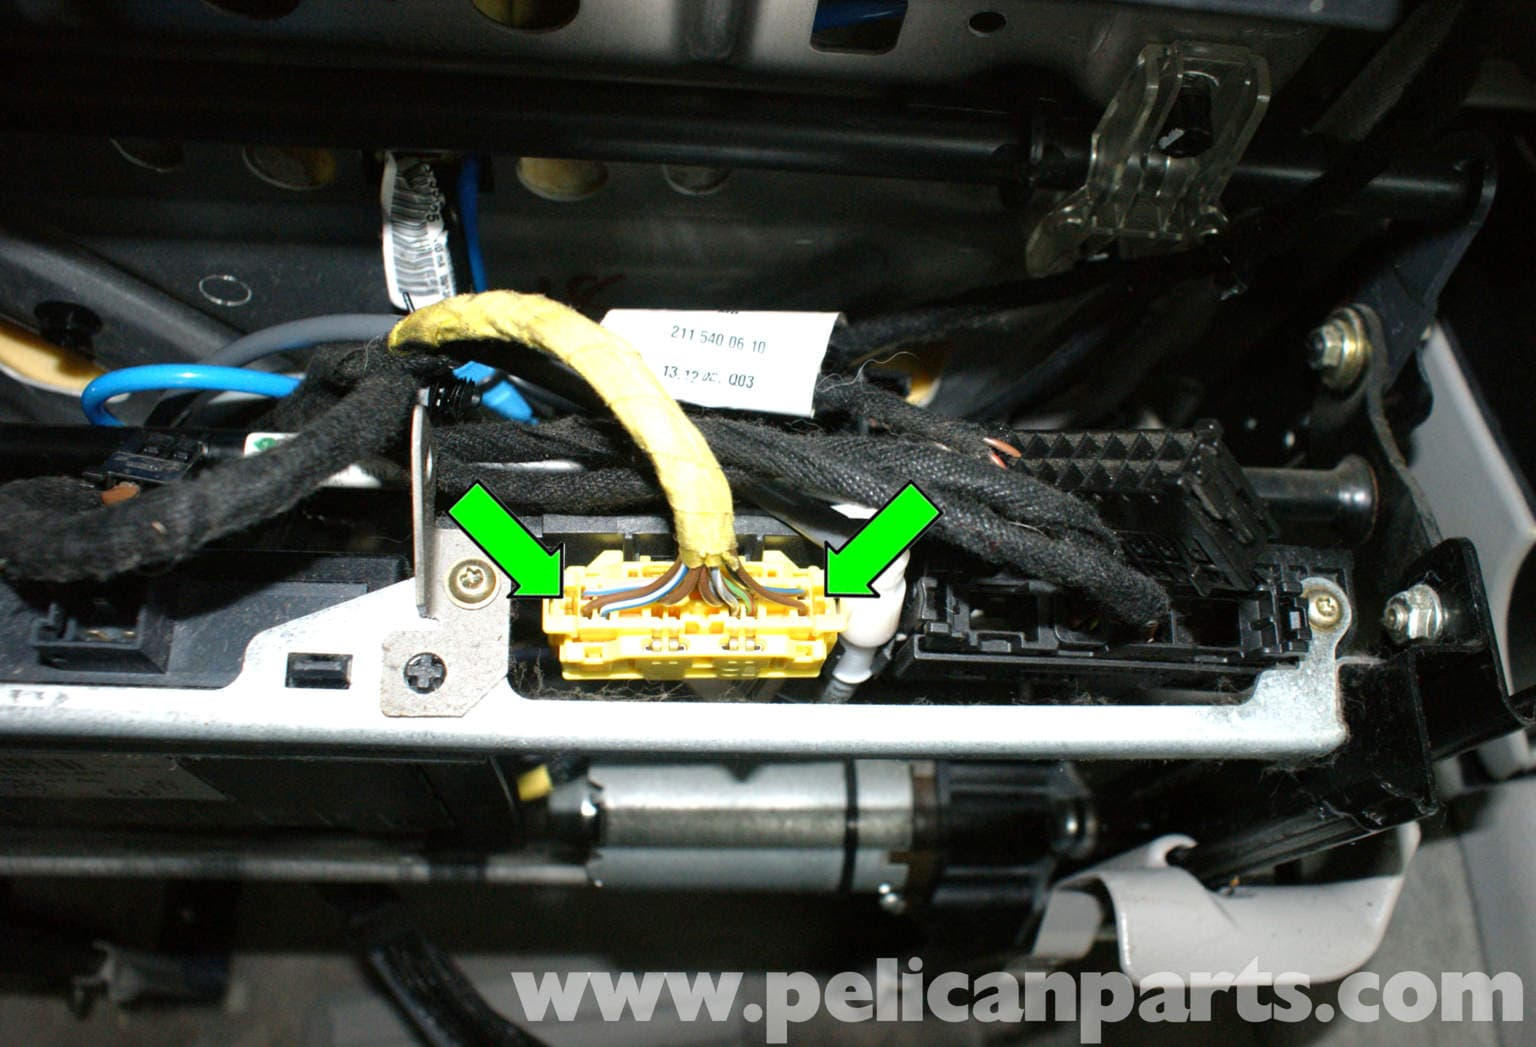 mercedes benz transmission diagrams    mercedes       benz    w211 front seat removal  2003 2009  e320     mercedes       benz    w211 front seat removal  2003 2009  e320